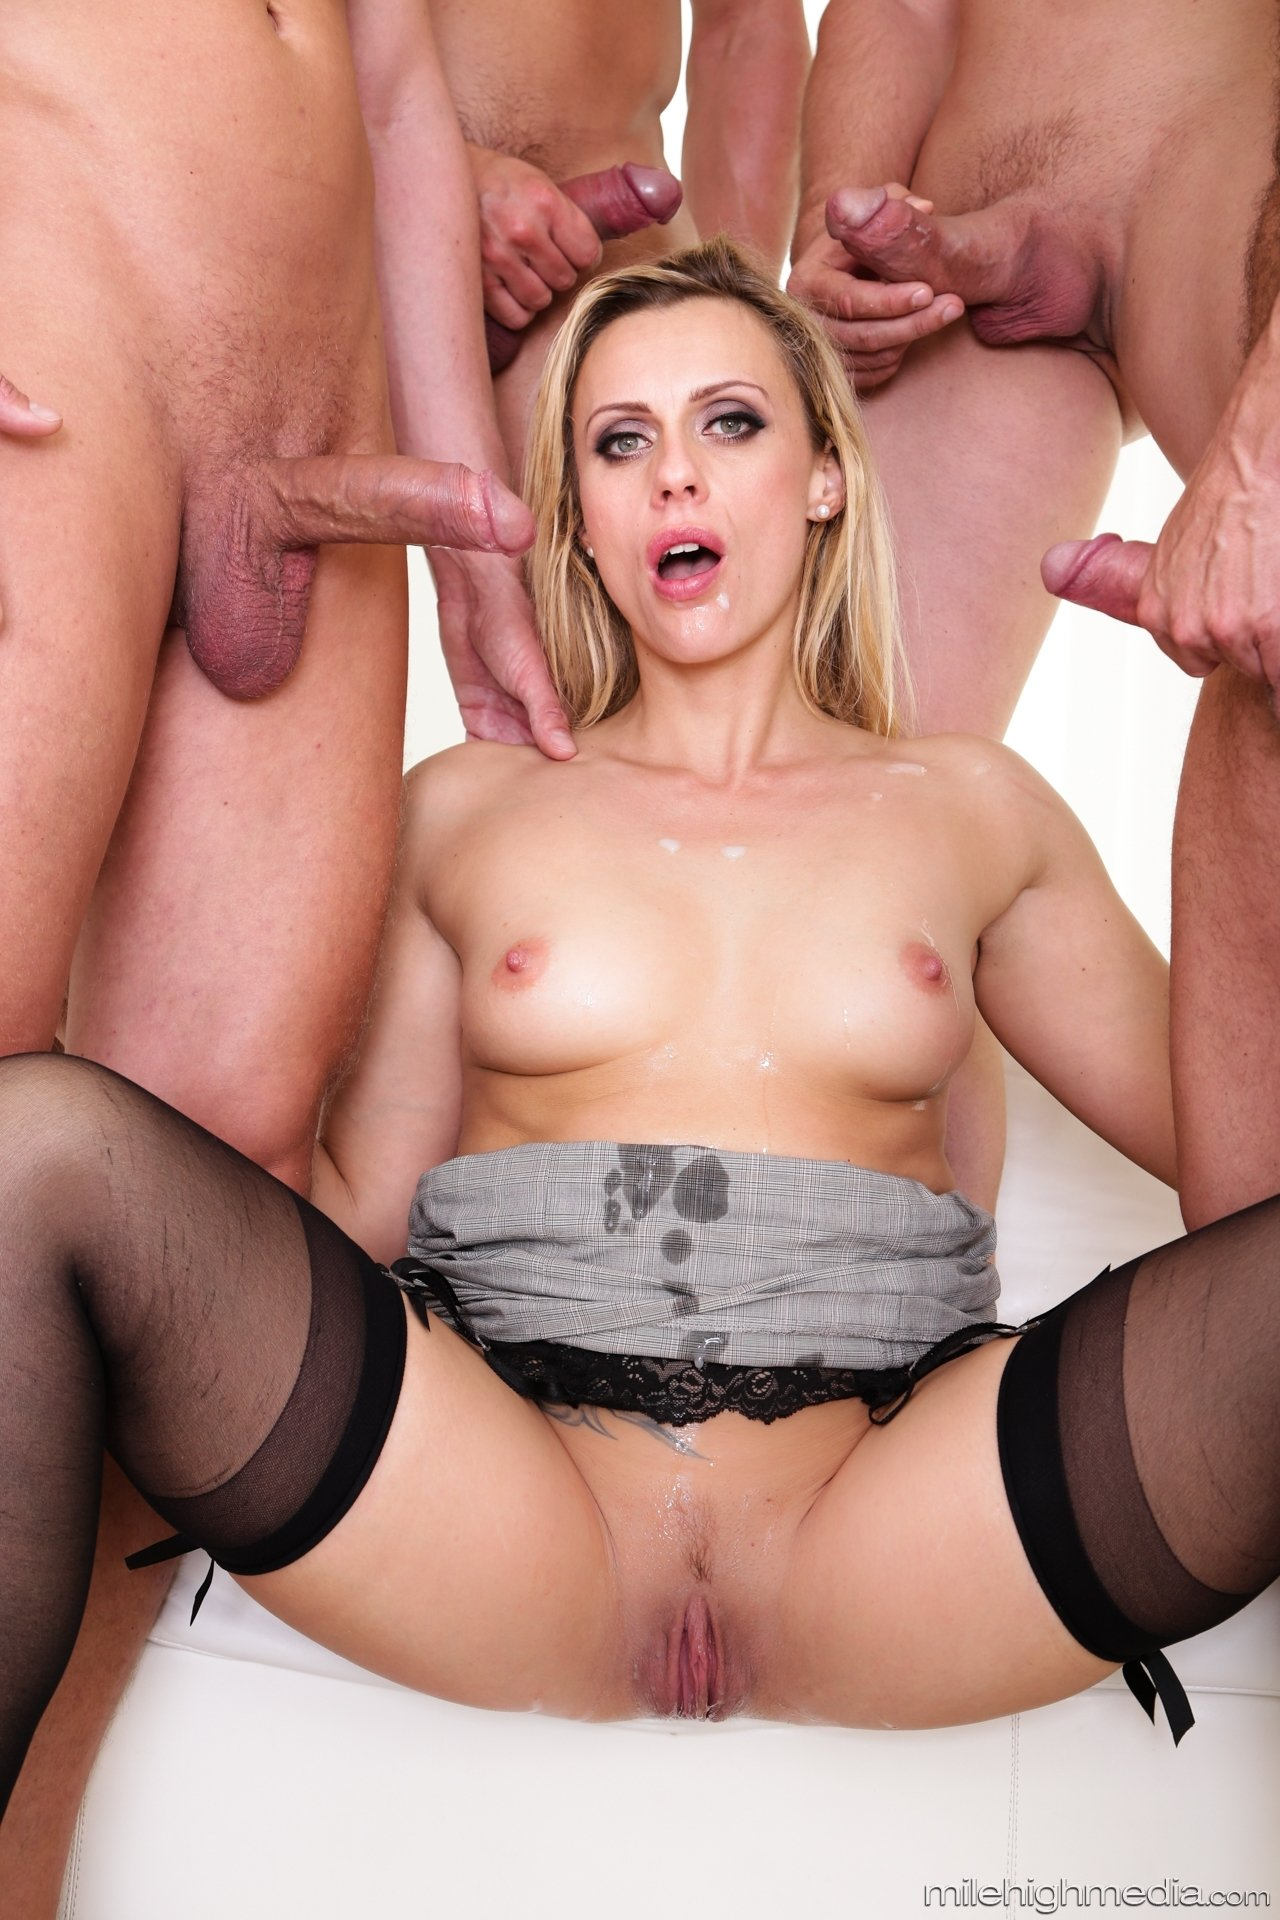 In wanted creampie wife